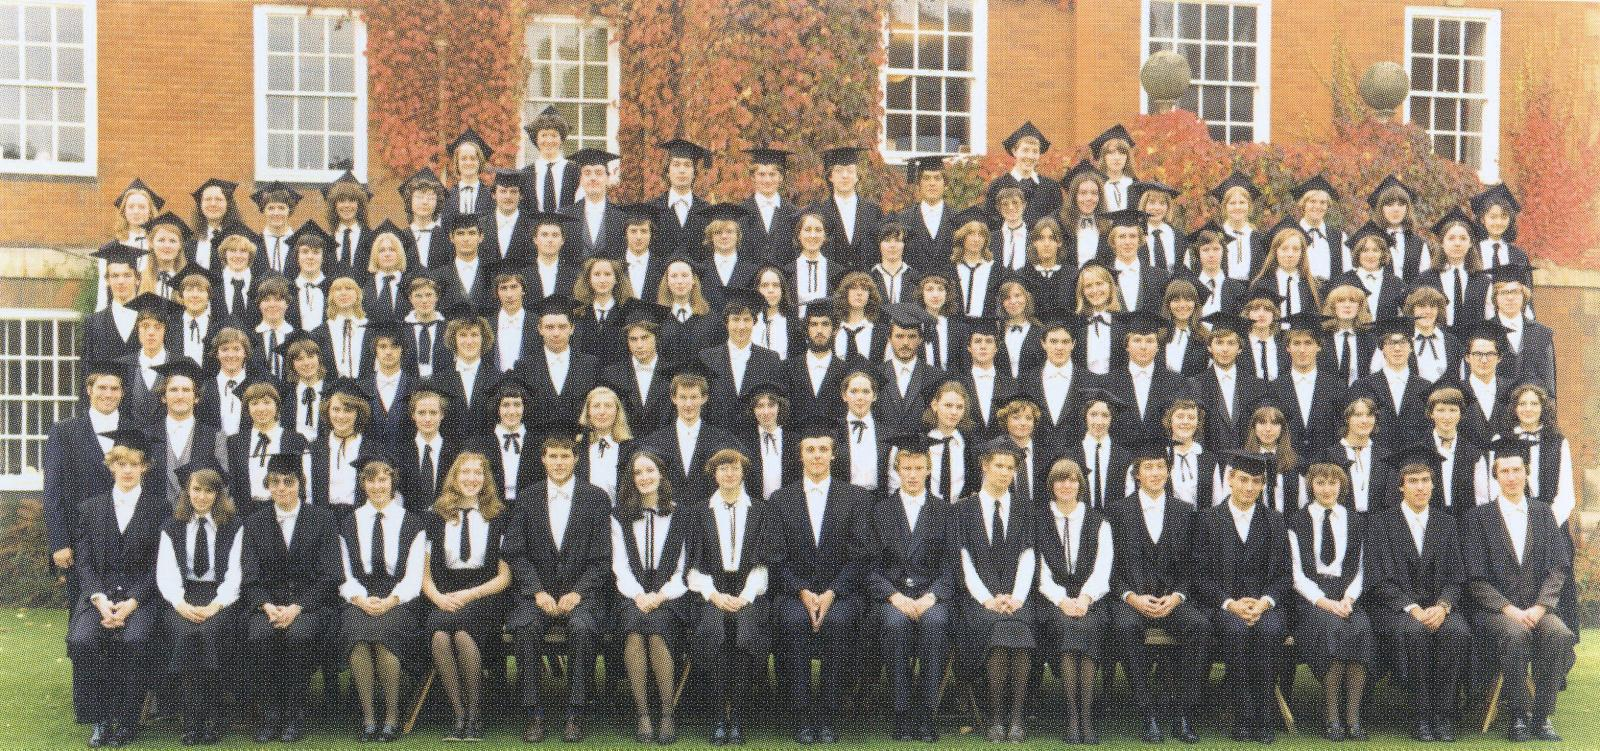 1979 Matriculation Photo